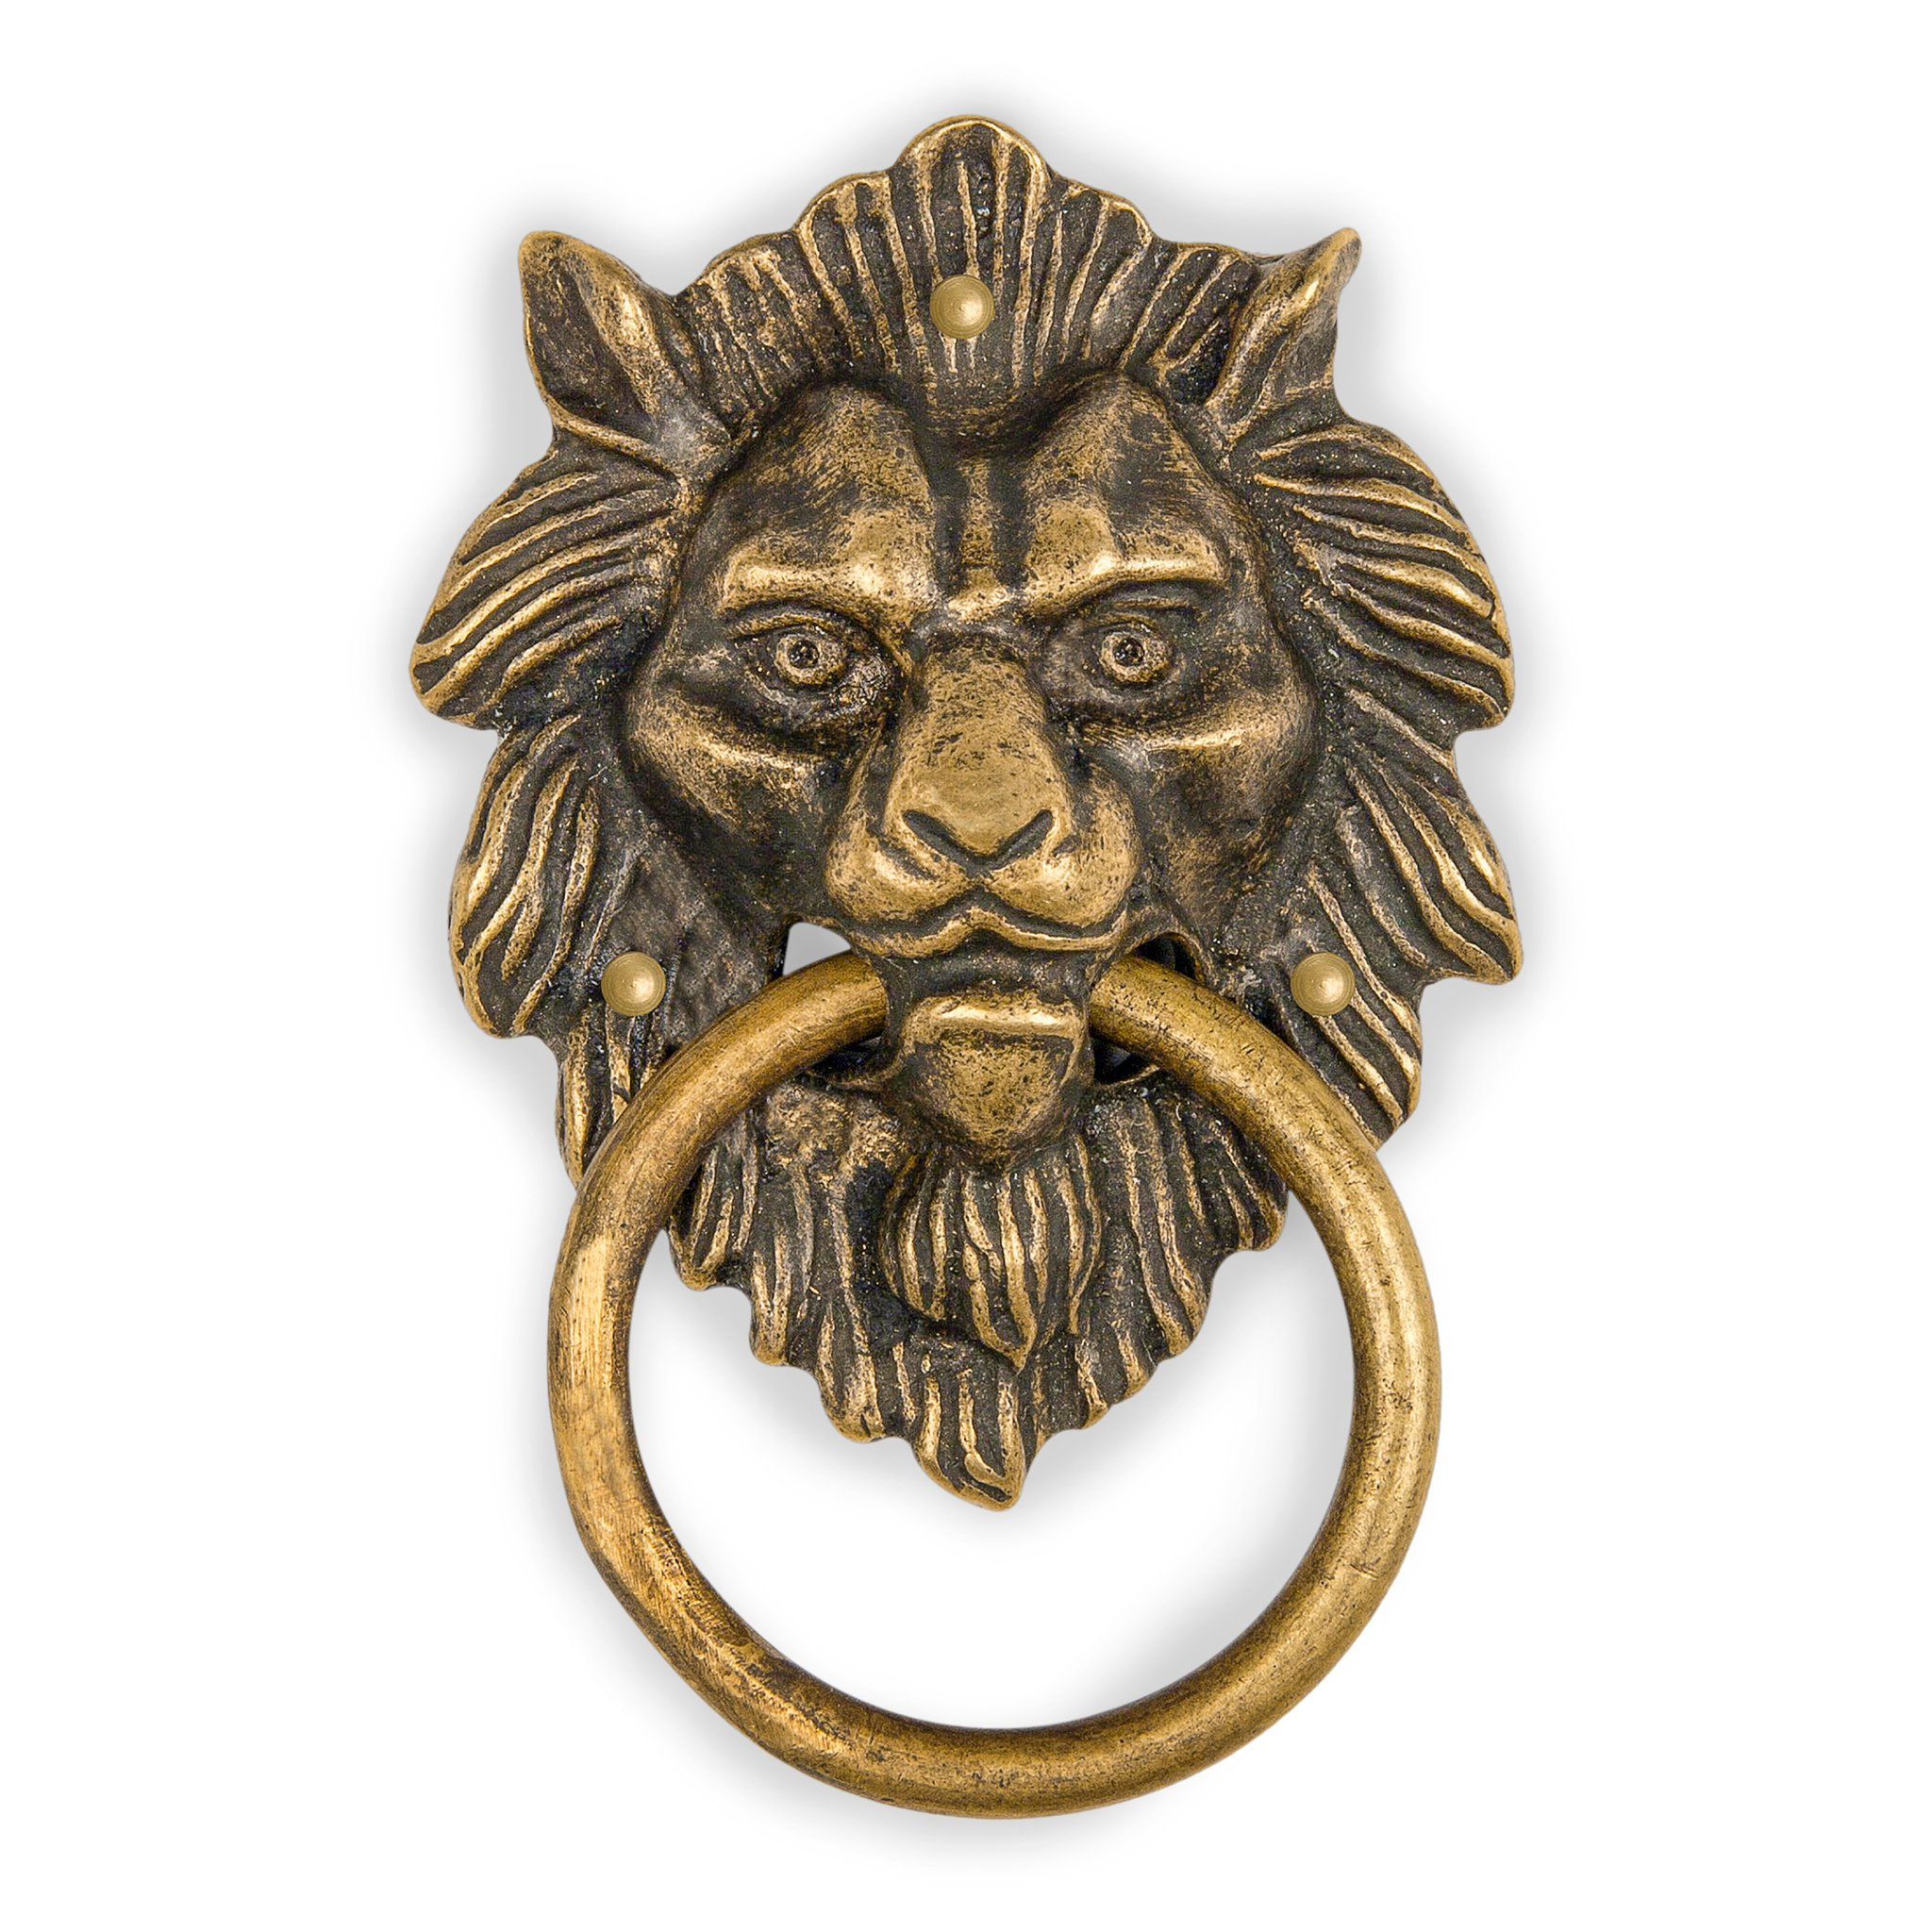 CBH Golden Hair Lion Brass Door Gate Pull Hardware 4''